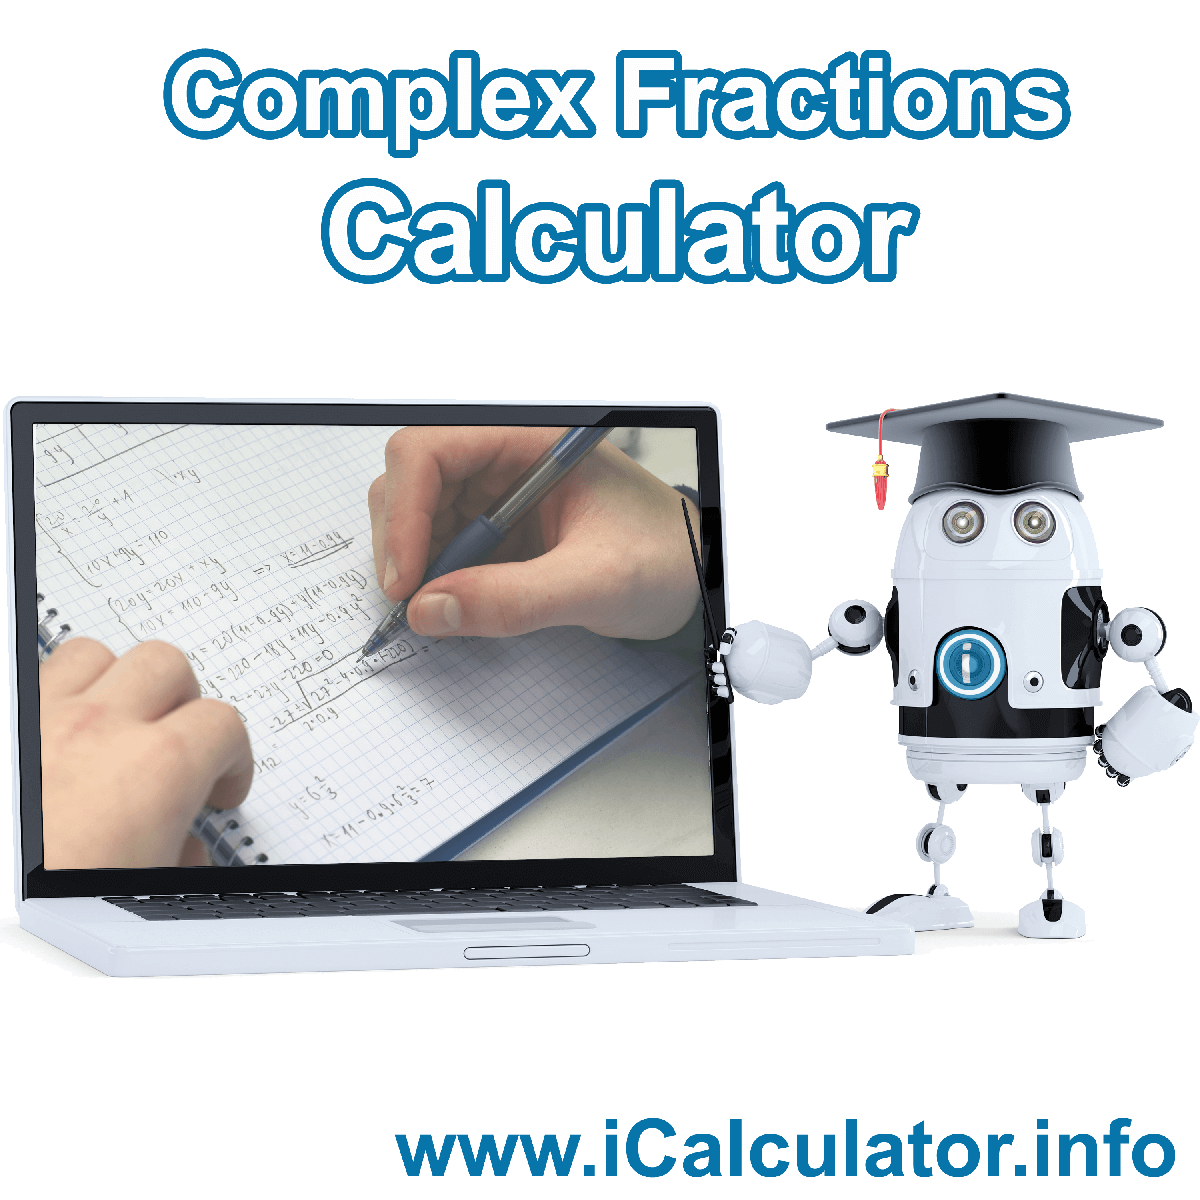 Simplifying Complex Fractions Calculator